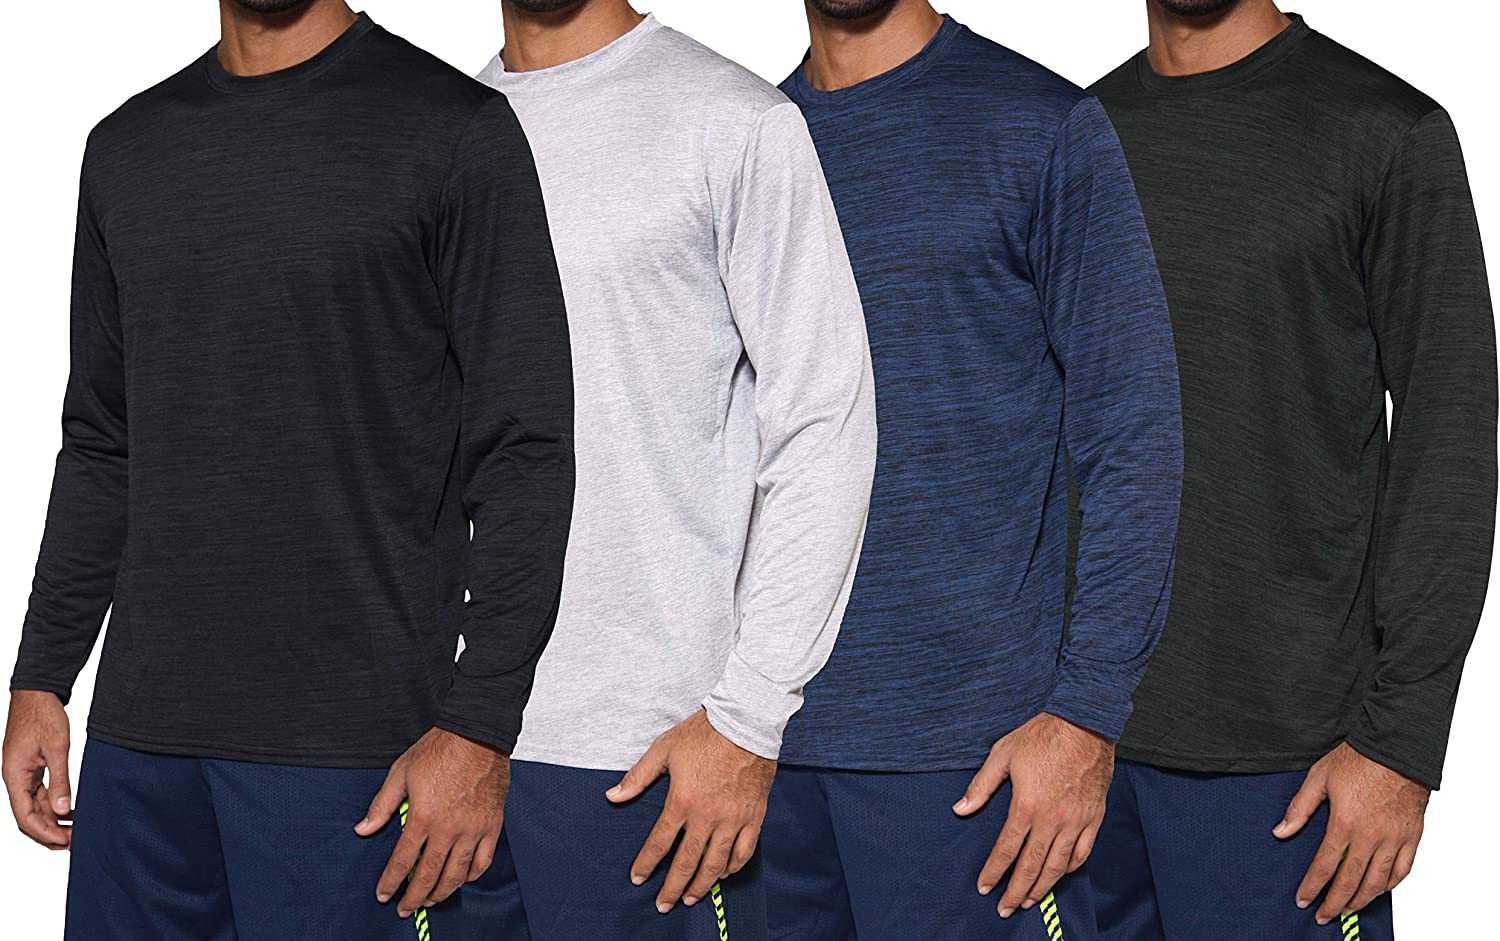 4 Pack Mens Dry-Fit Moisture Wicking Performance Long Sleeve T-Shirt UV Sun Protection Outdoor Active Athletic Crew Top